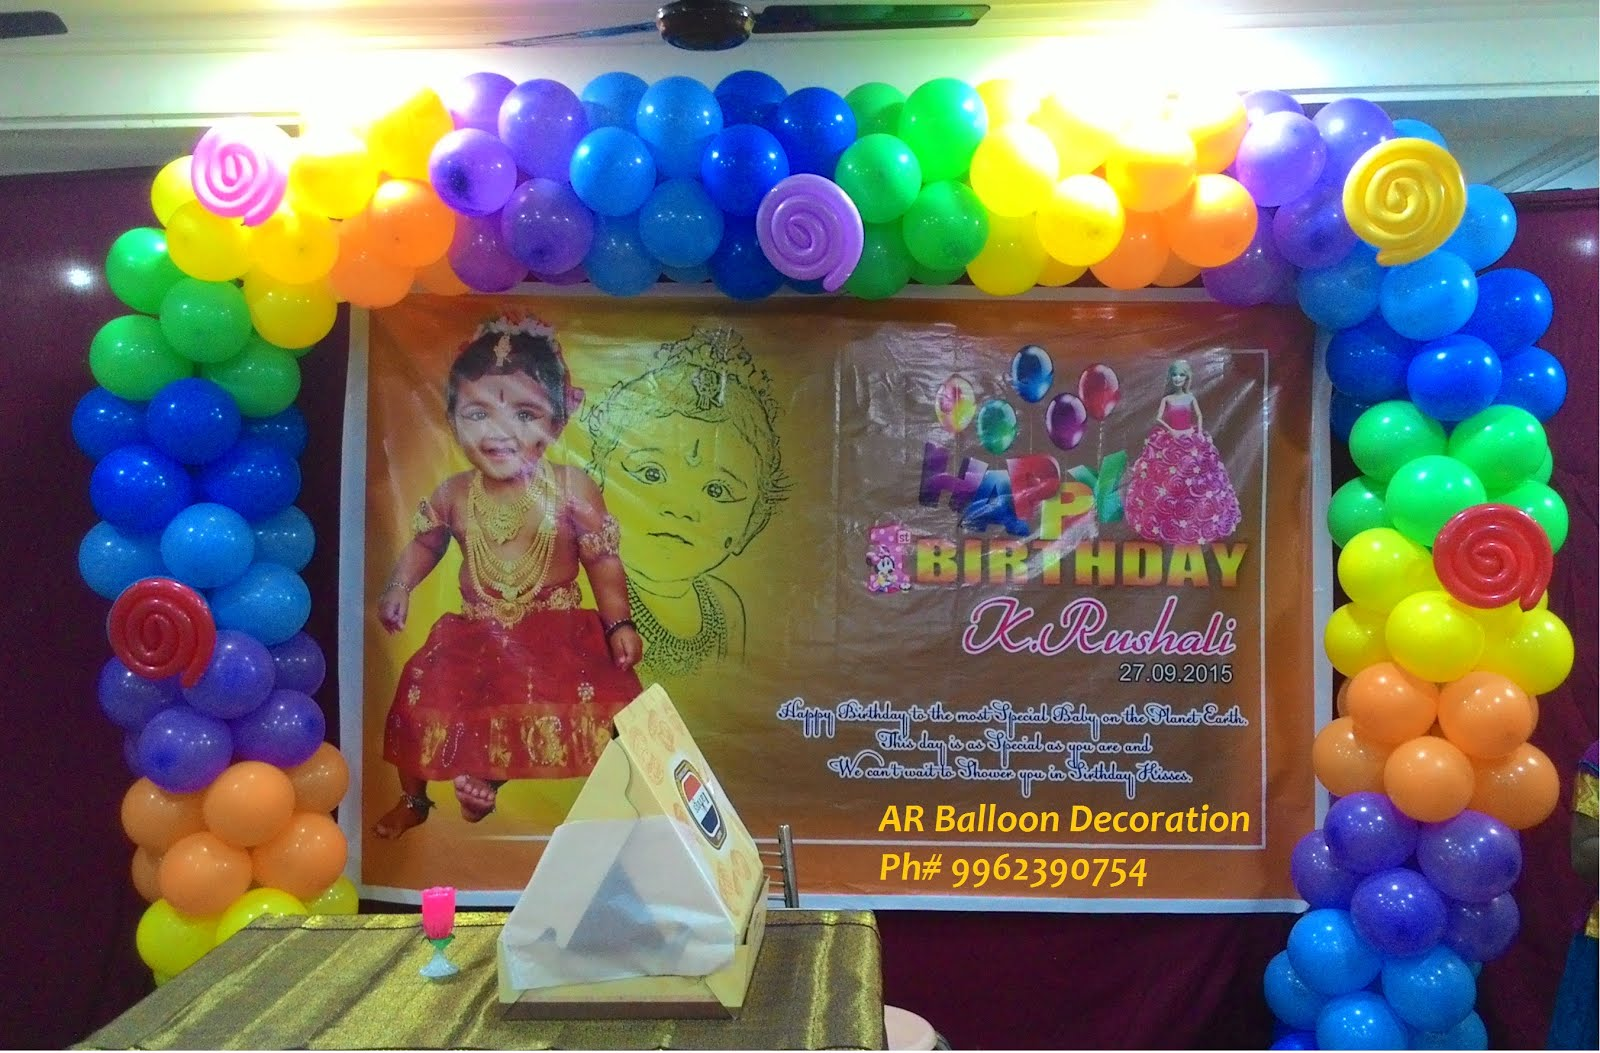 Ar balloon decoration the best balloon decorations in for Balloon decoration color combinations